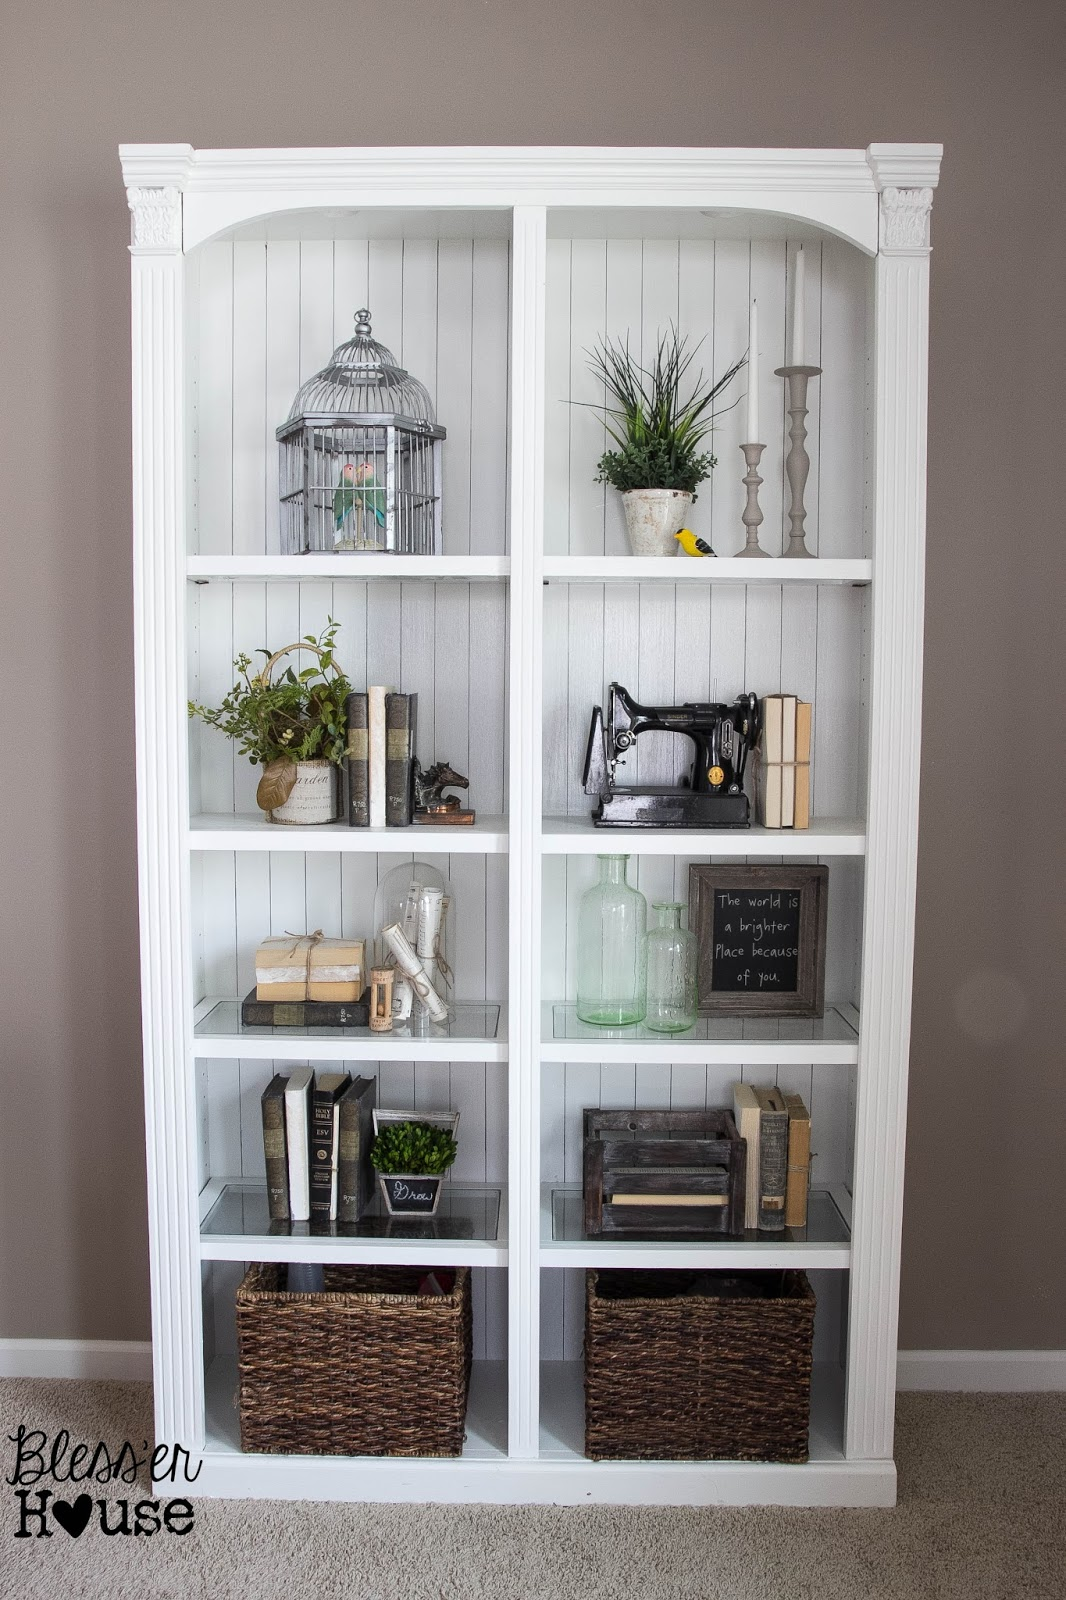 Bless'er House   Styling a Bookcase - Less is more.